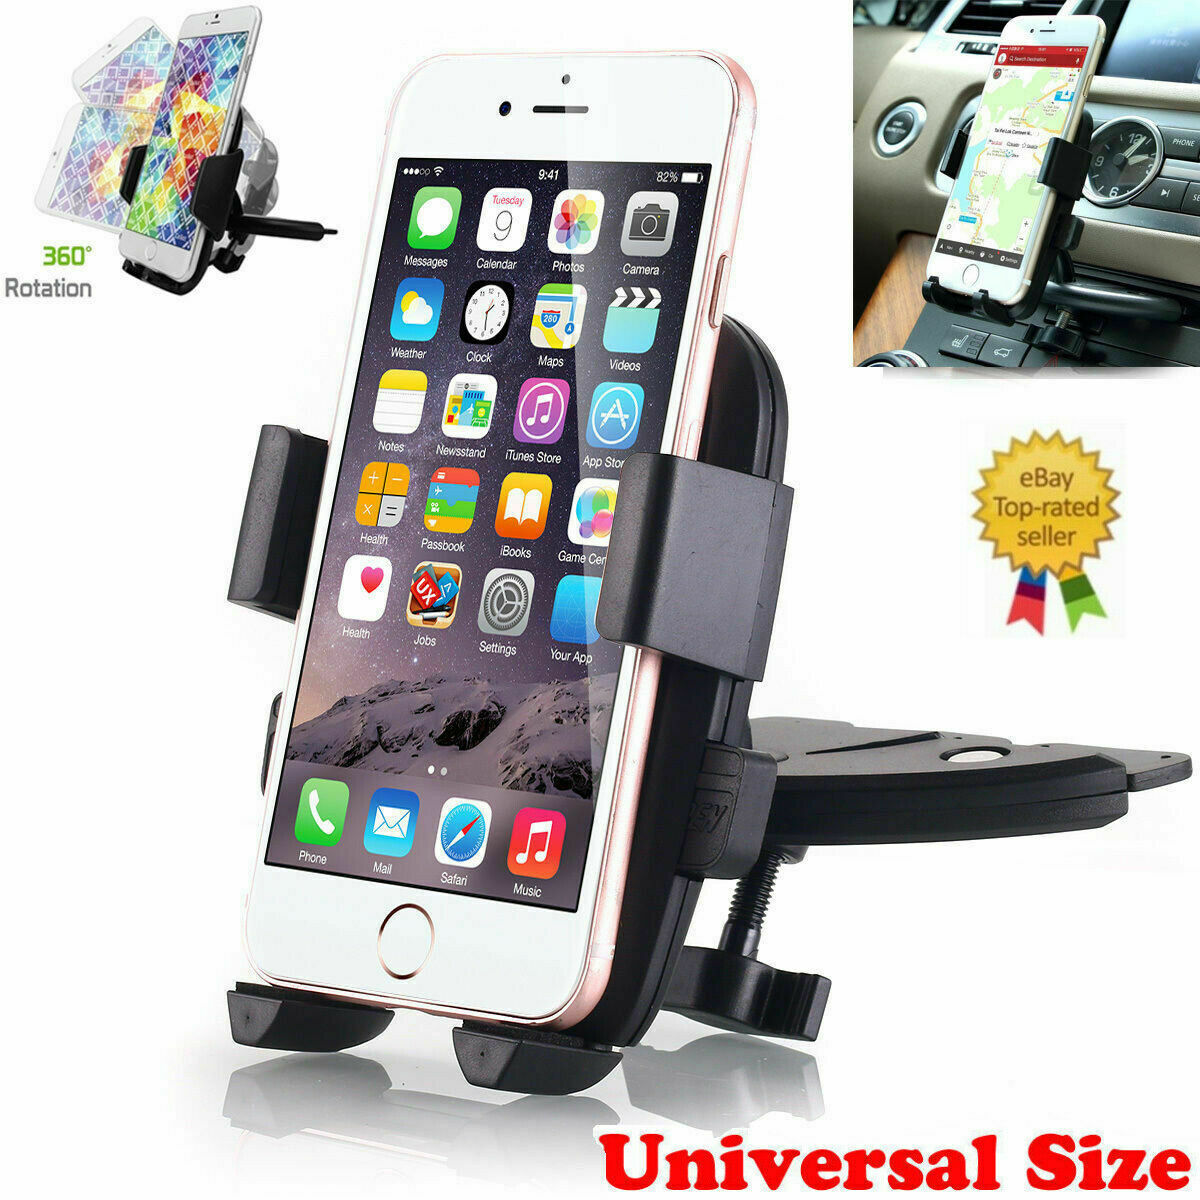 360° Car Holder CD Slot Mount Bracket For Mobile Cell Phone iPhone Samsung GPS Cell Phone Accessories